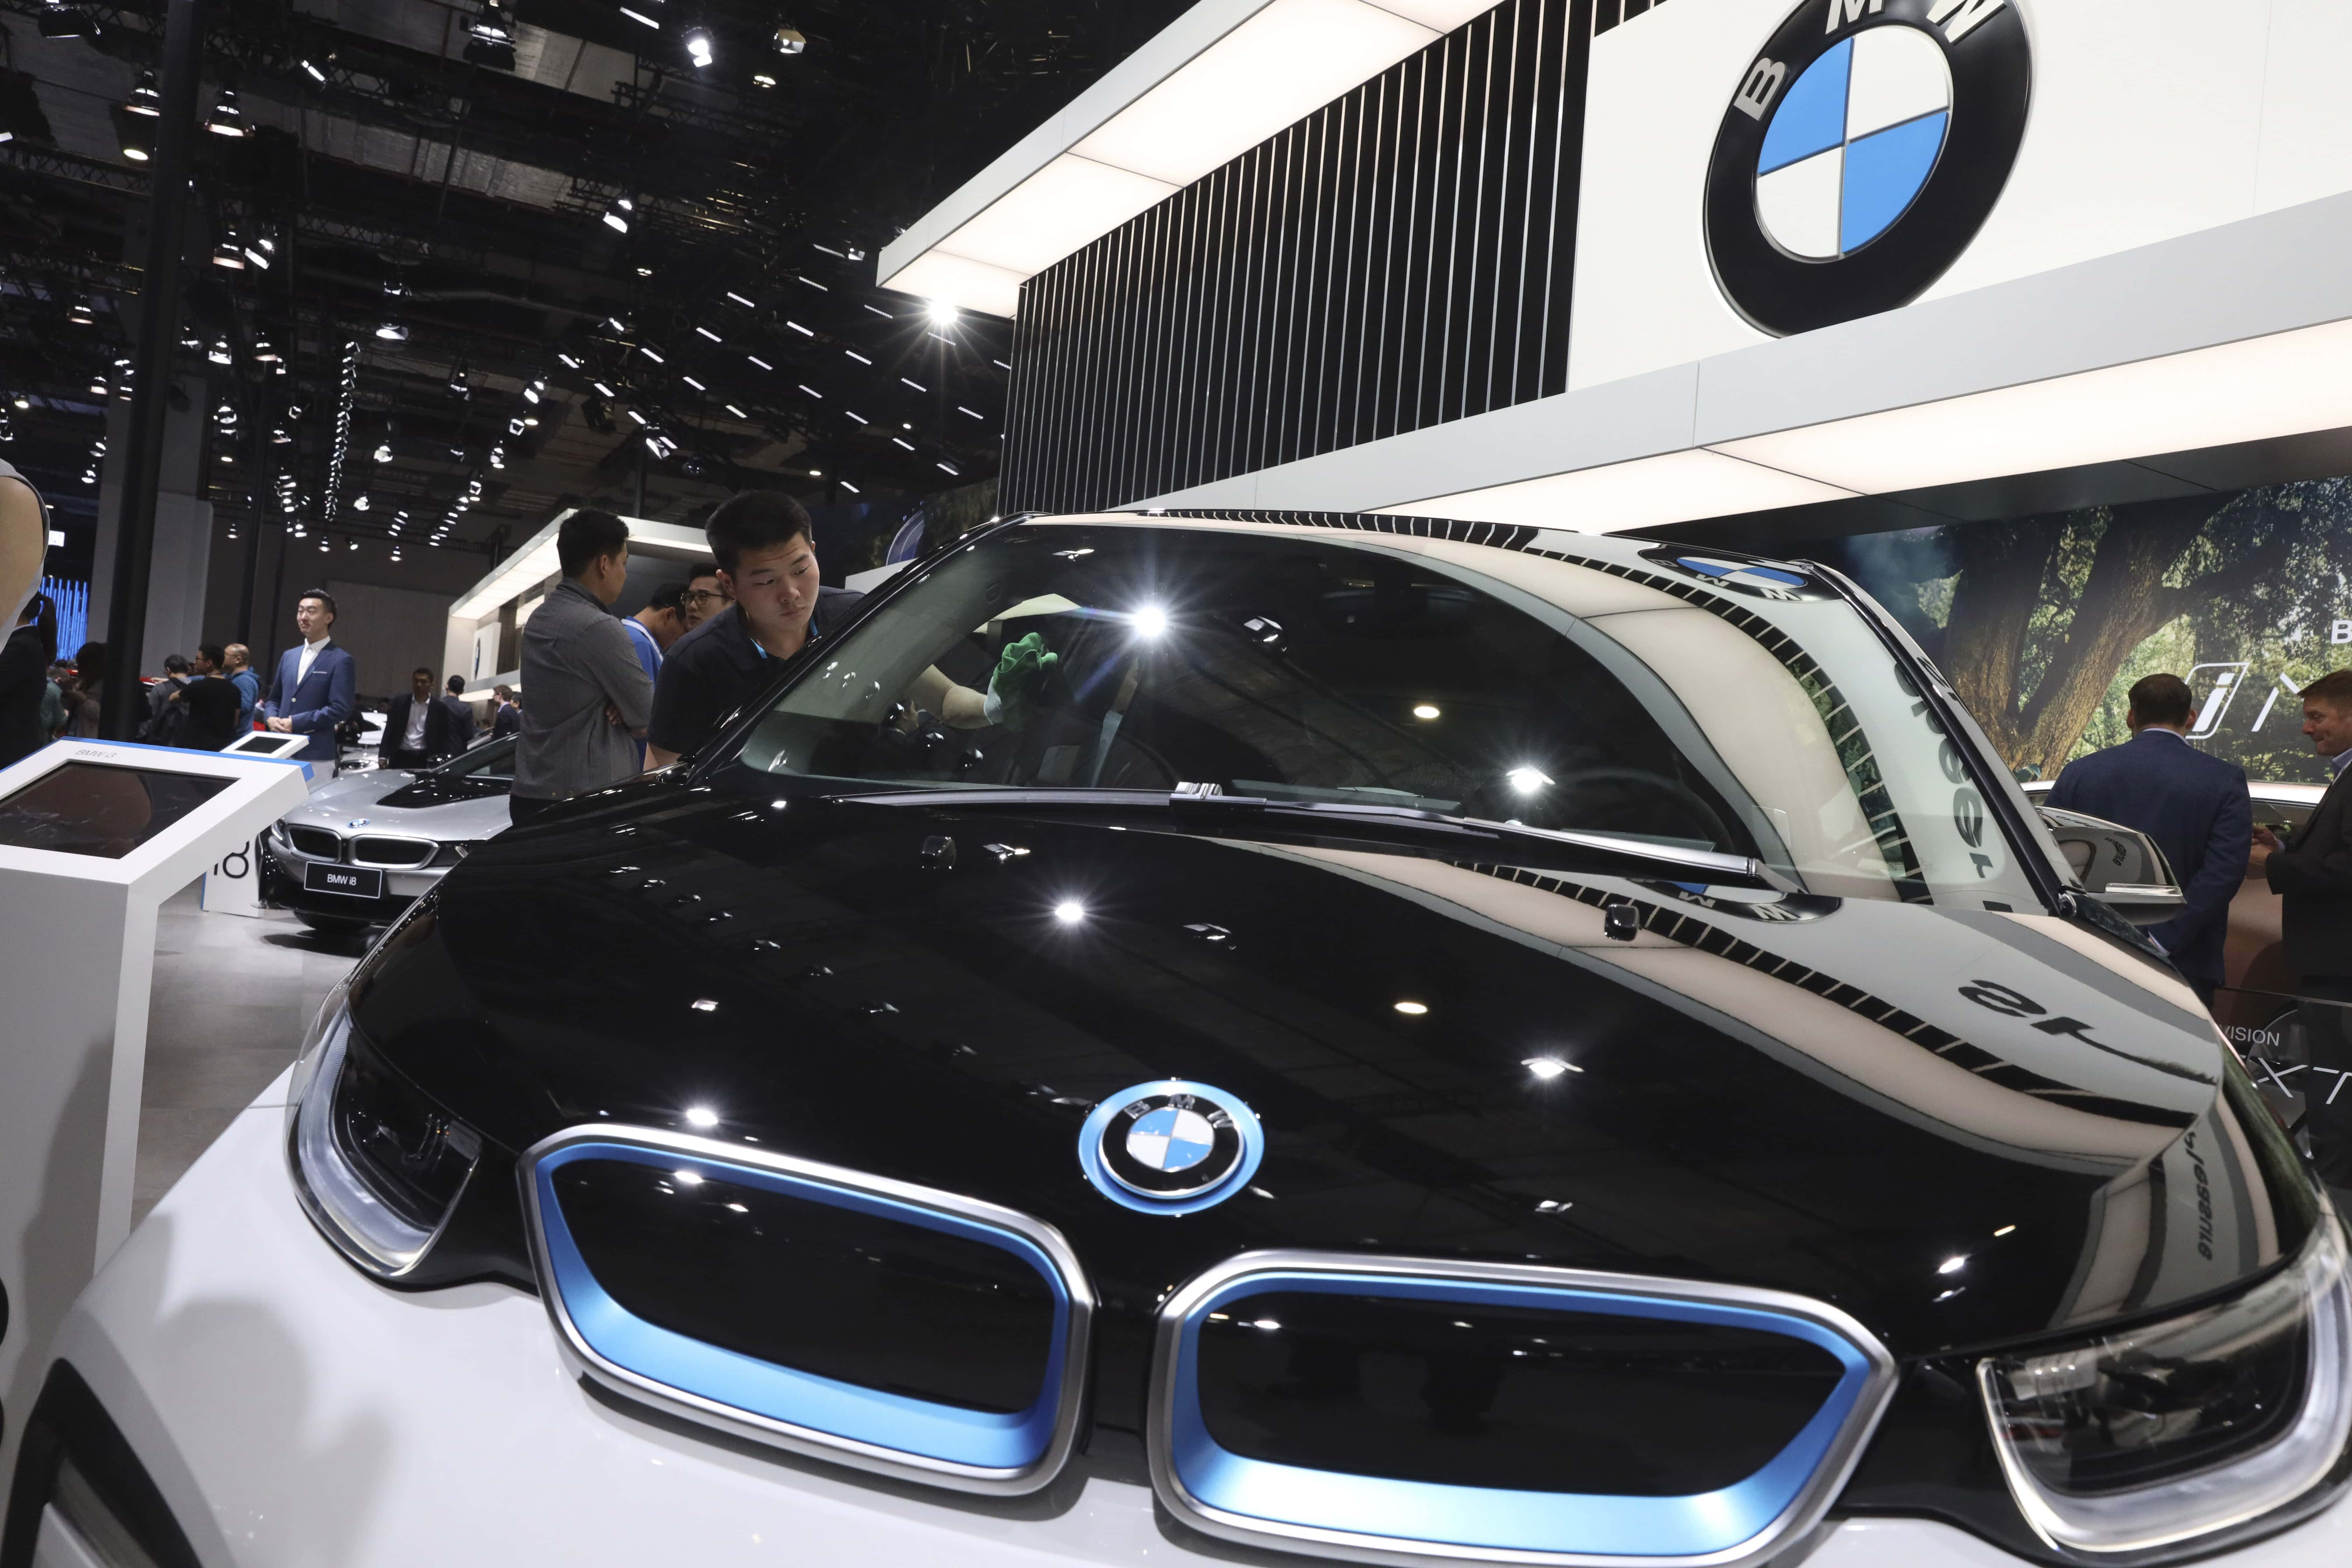 BMW Of North America Reports Strong July Brand Sales | 77 WABC Radio